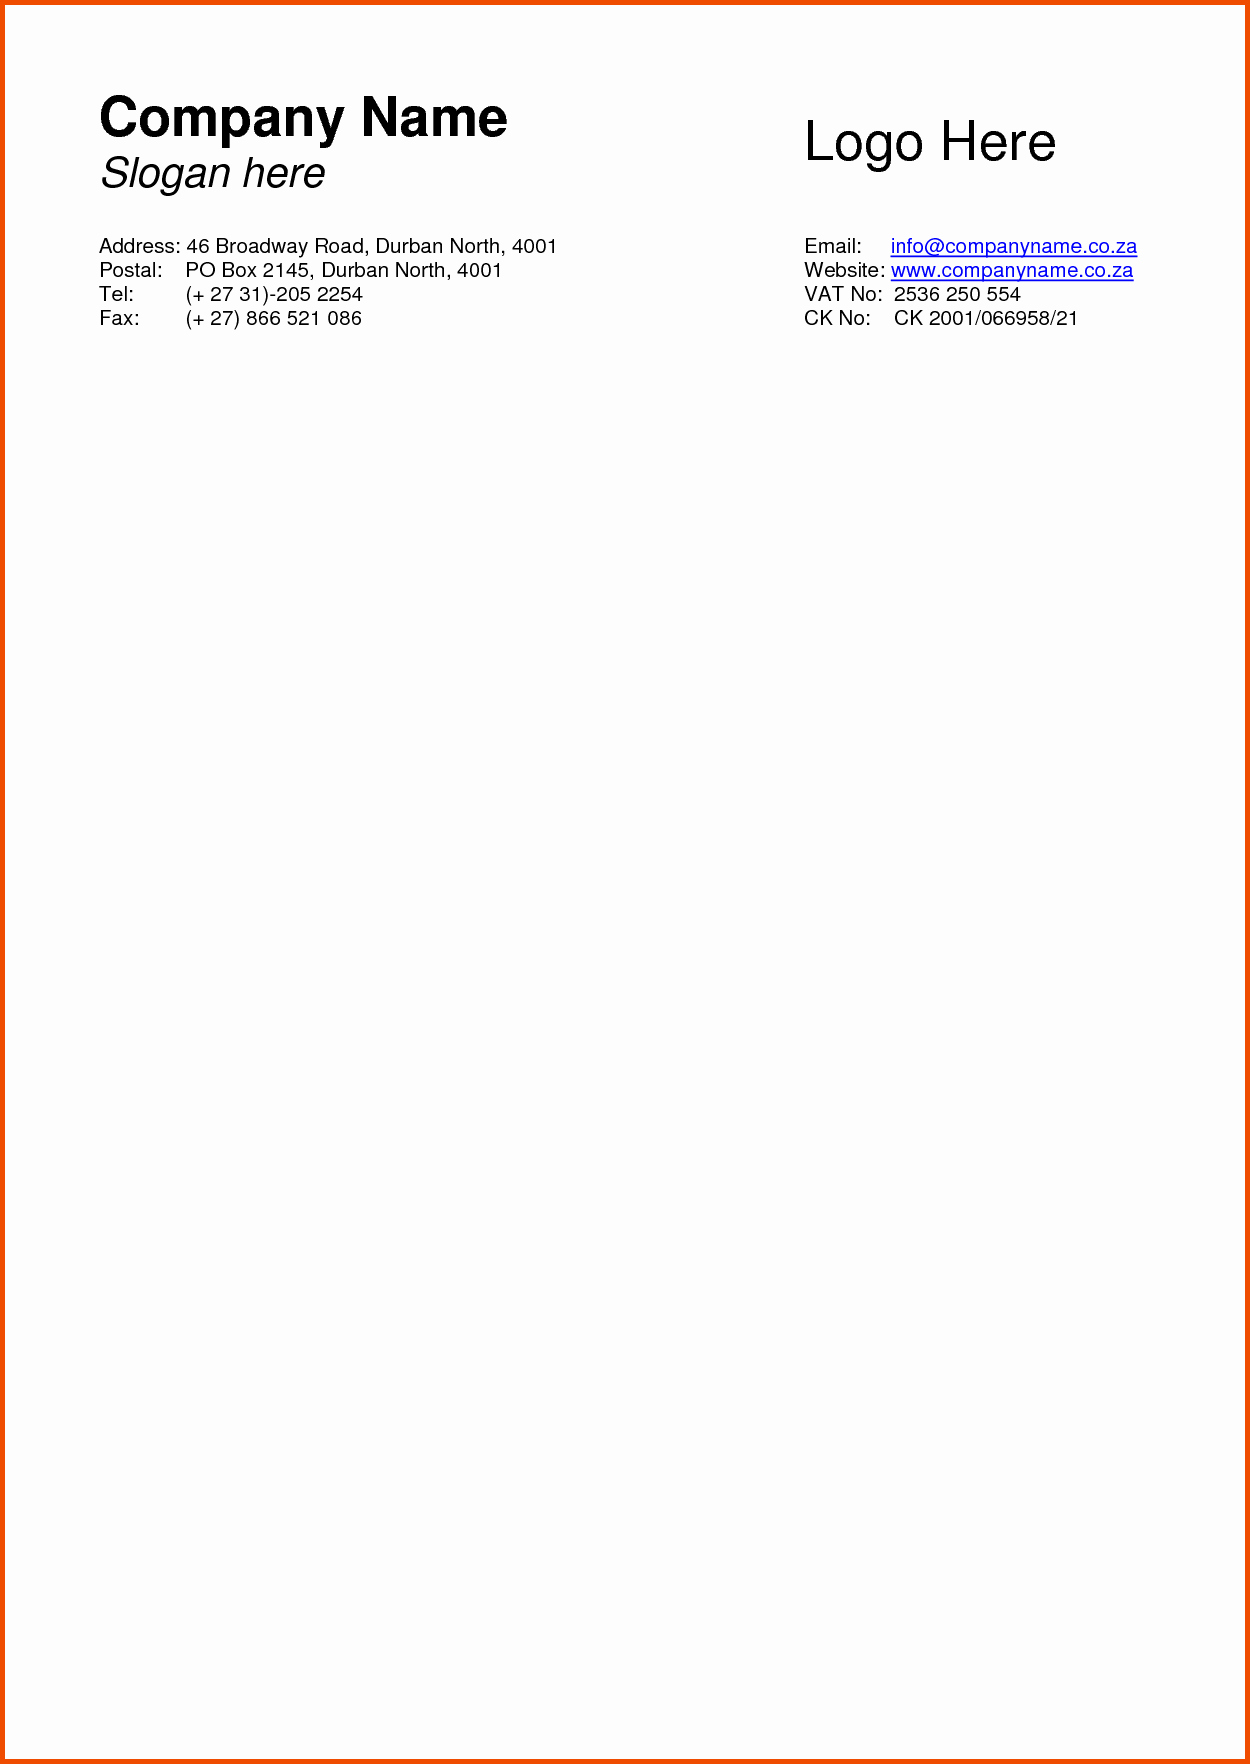 Business Letter Template with Letterhead New Pin by Balaji Puri On Ojeswi Medical Mahagaon